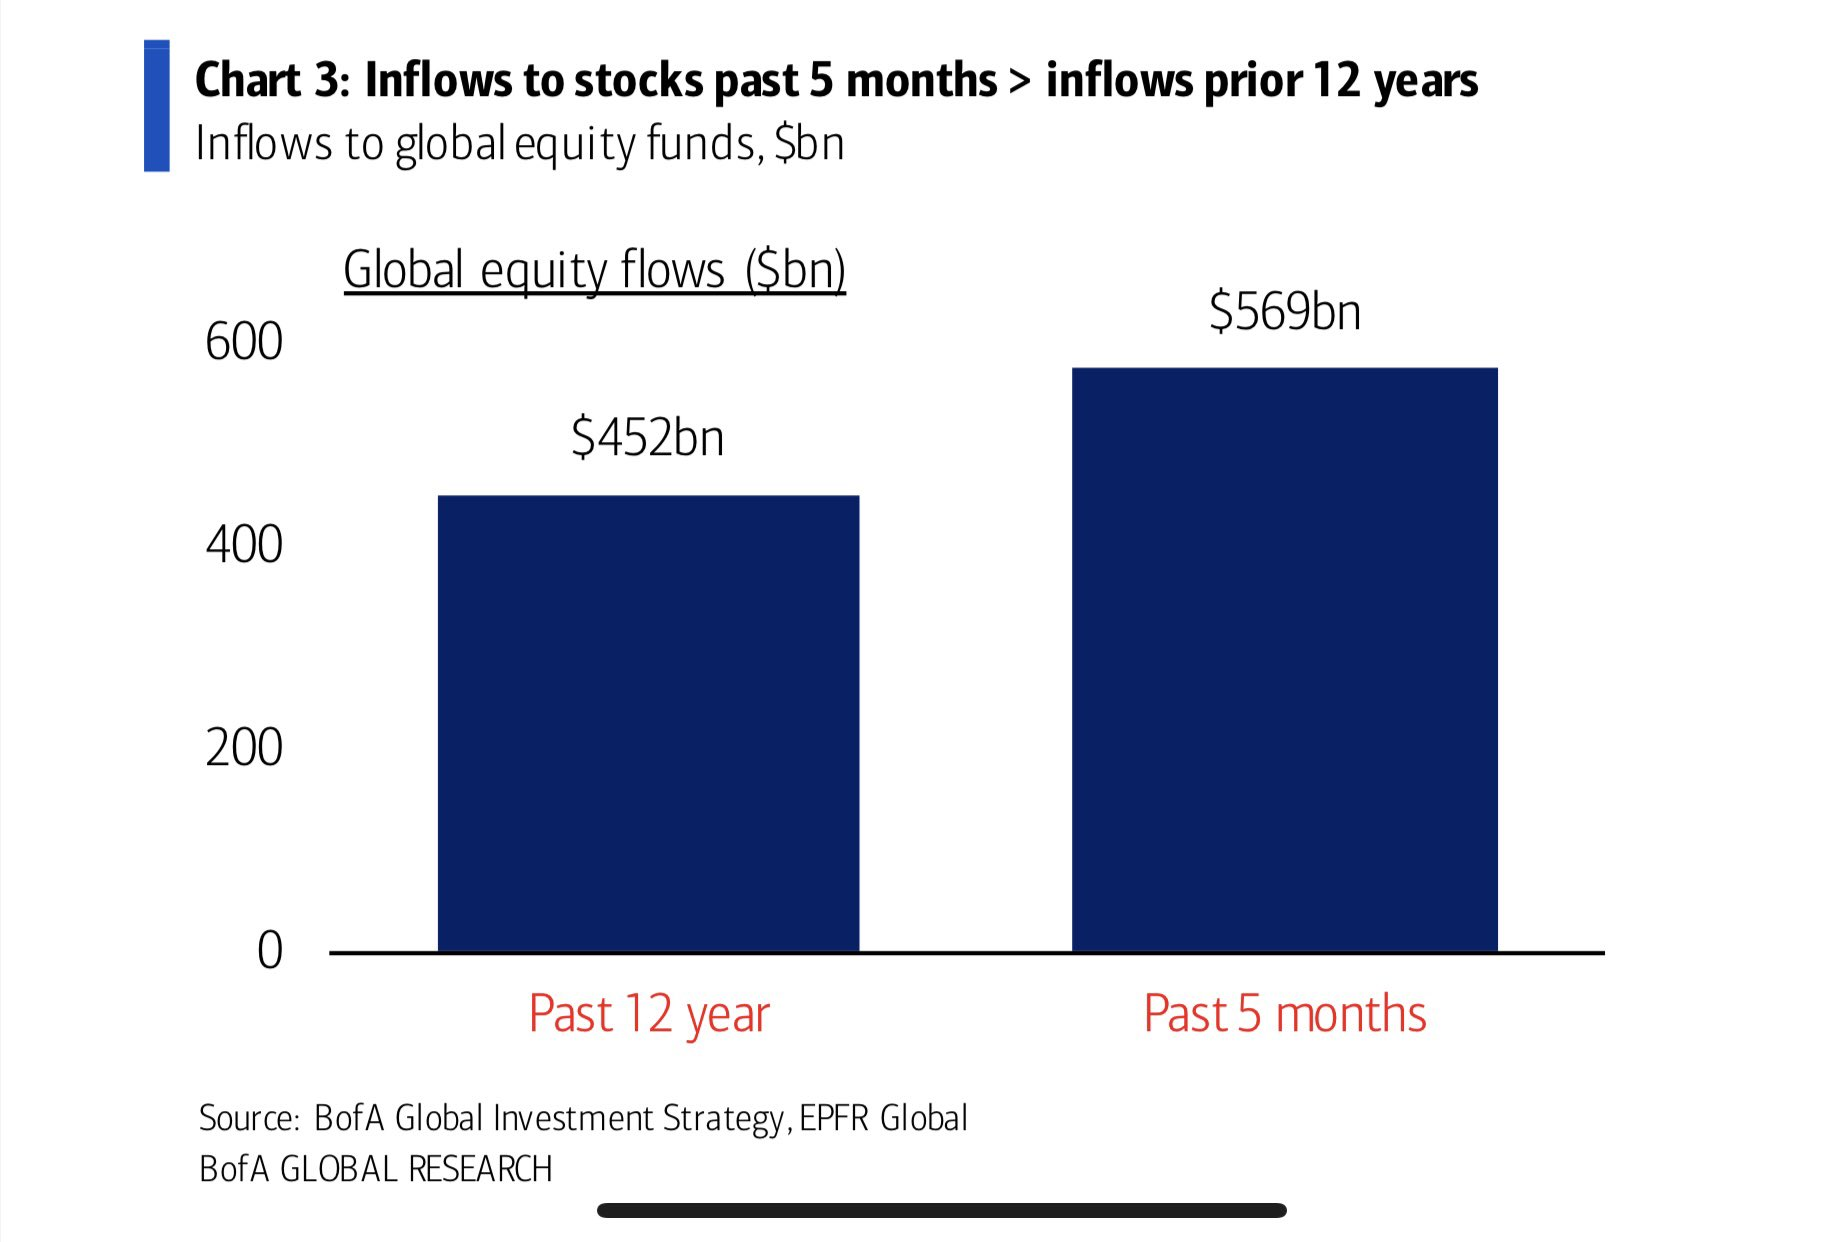 Stock market inflows in last 5 months exceed previous 12 years - BofA